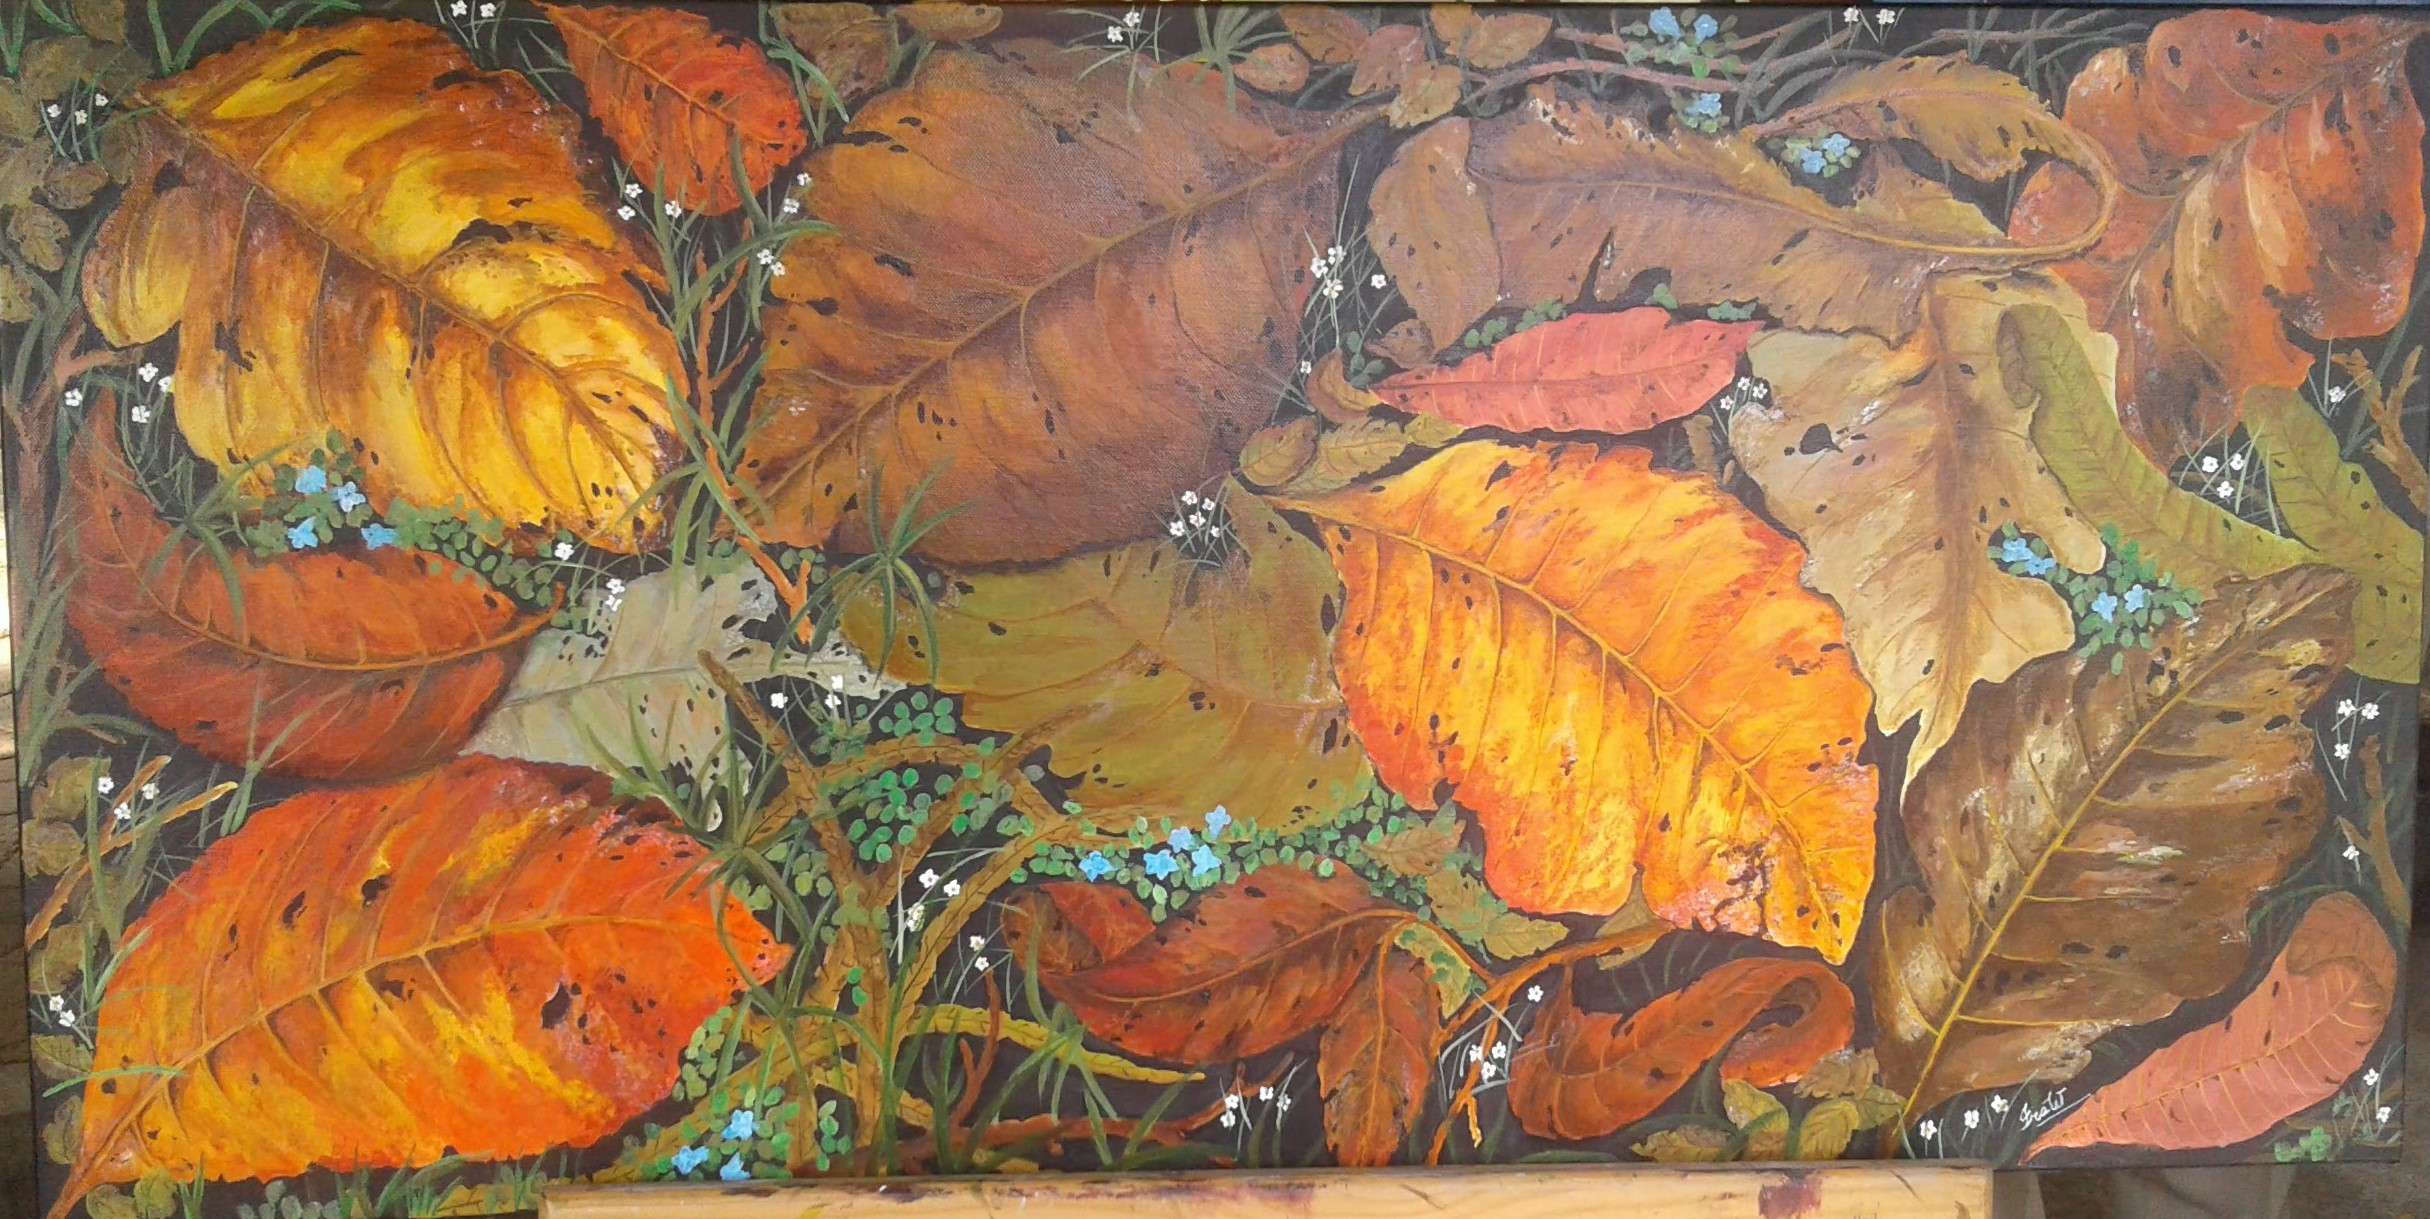 Leaves on Grass by Iranganie Wickramasinghe